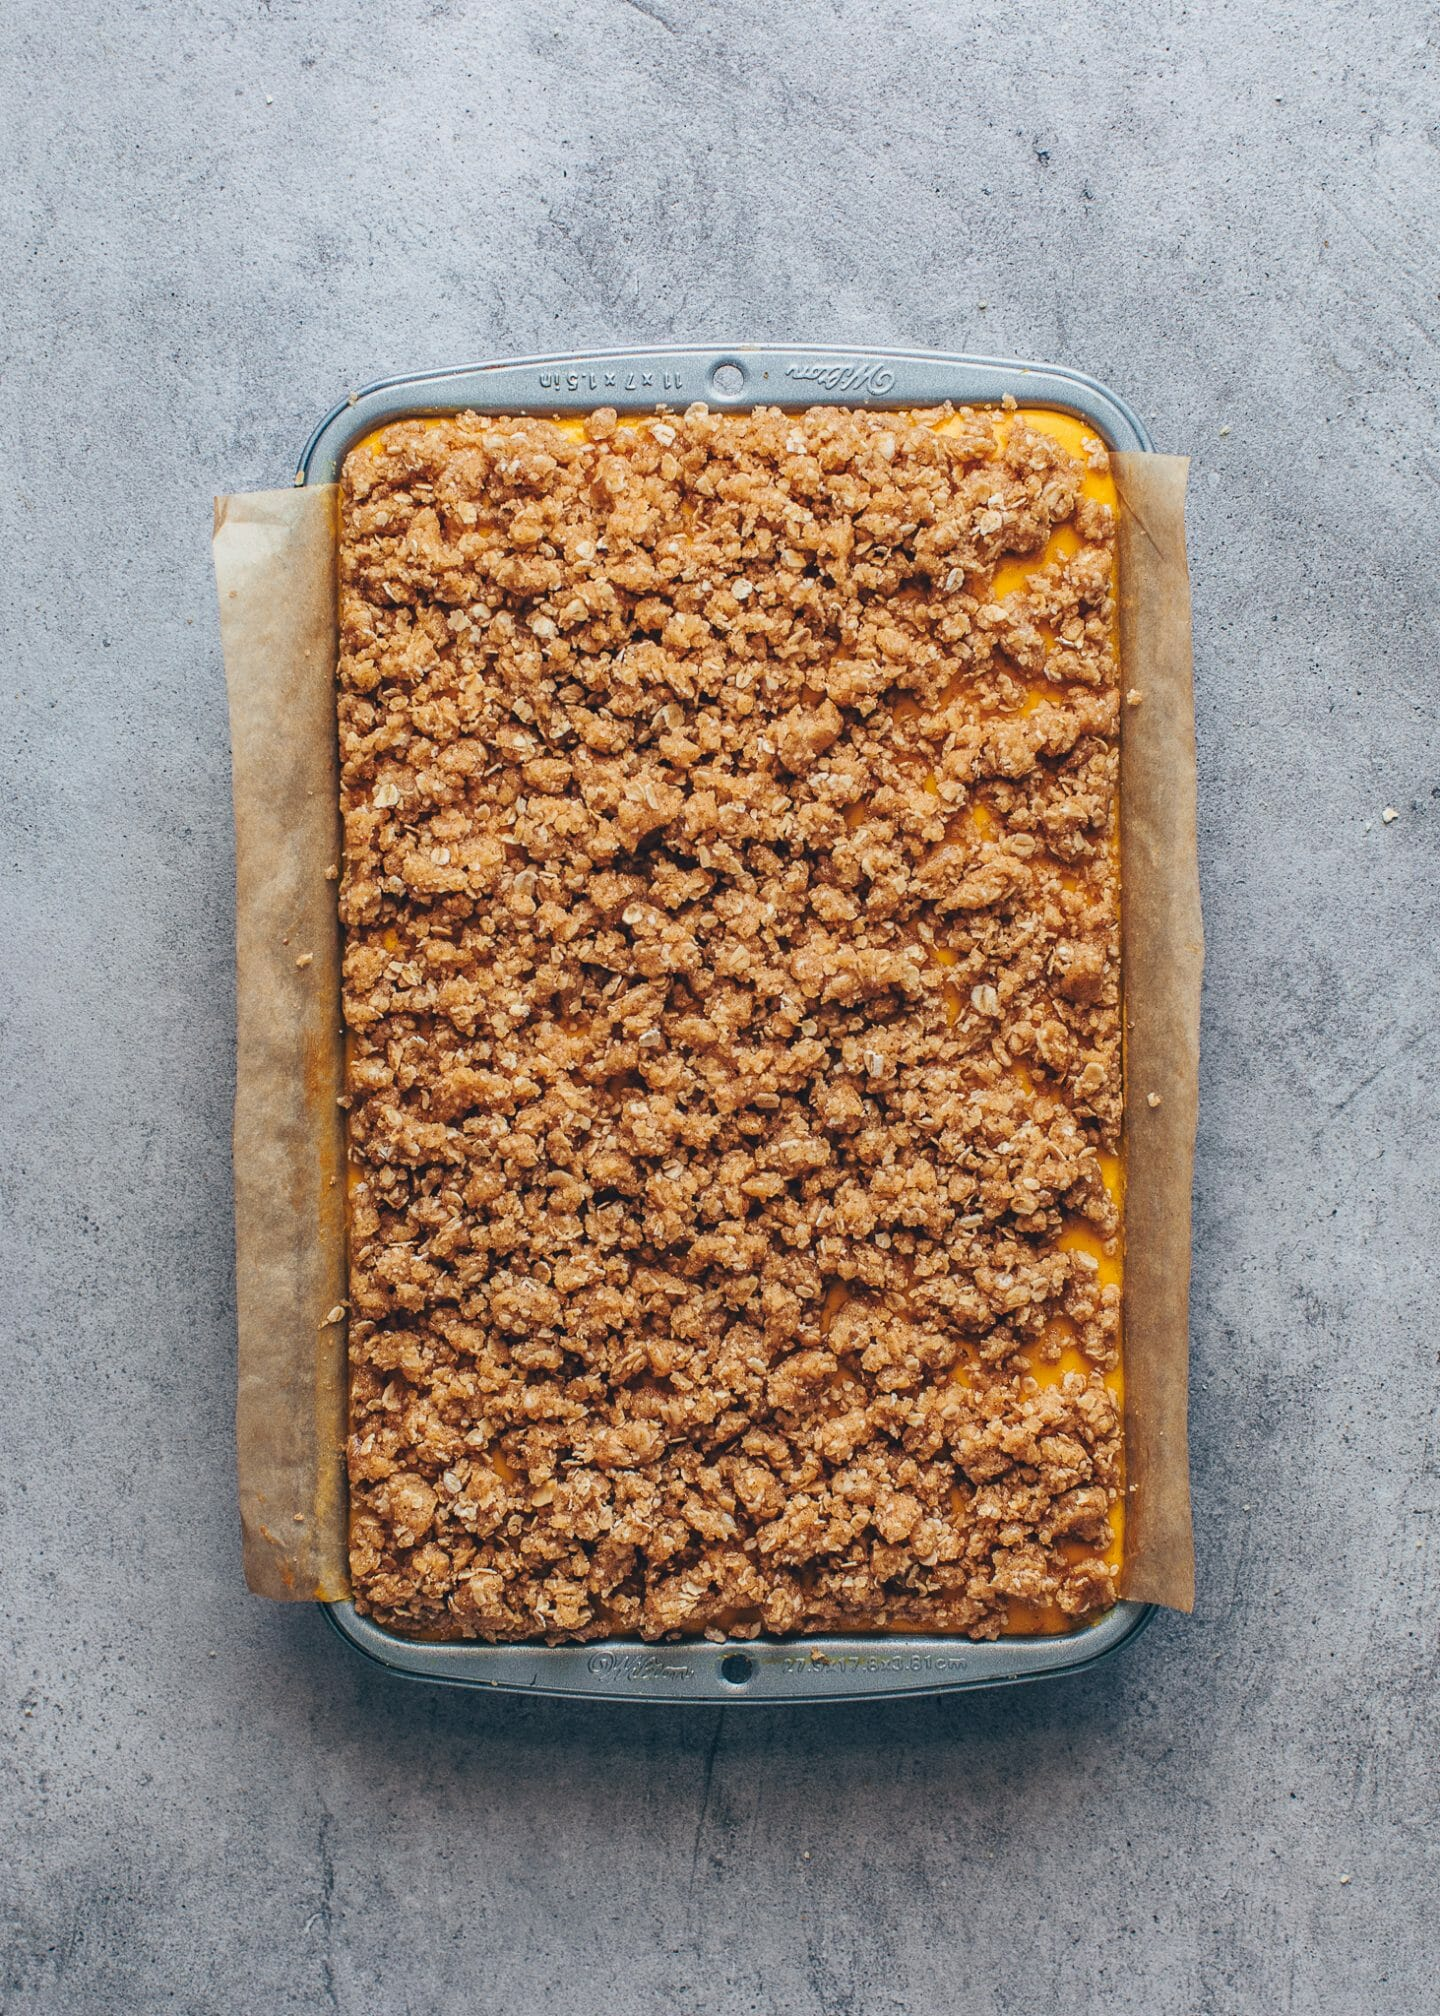 pumpkin cheesecake with cinnamon streusel topping in a baking pan